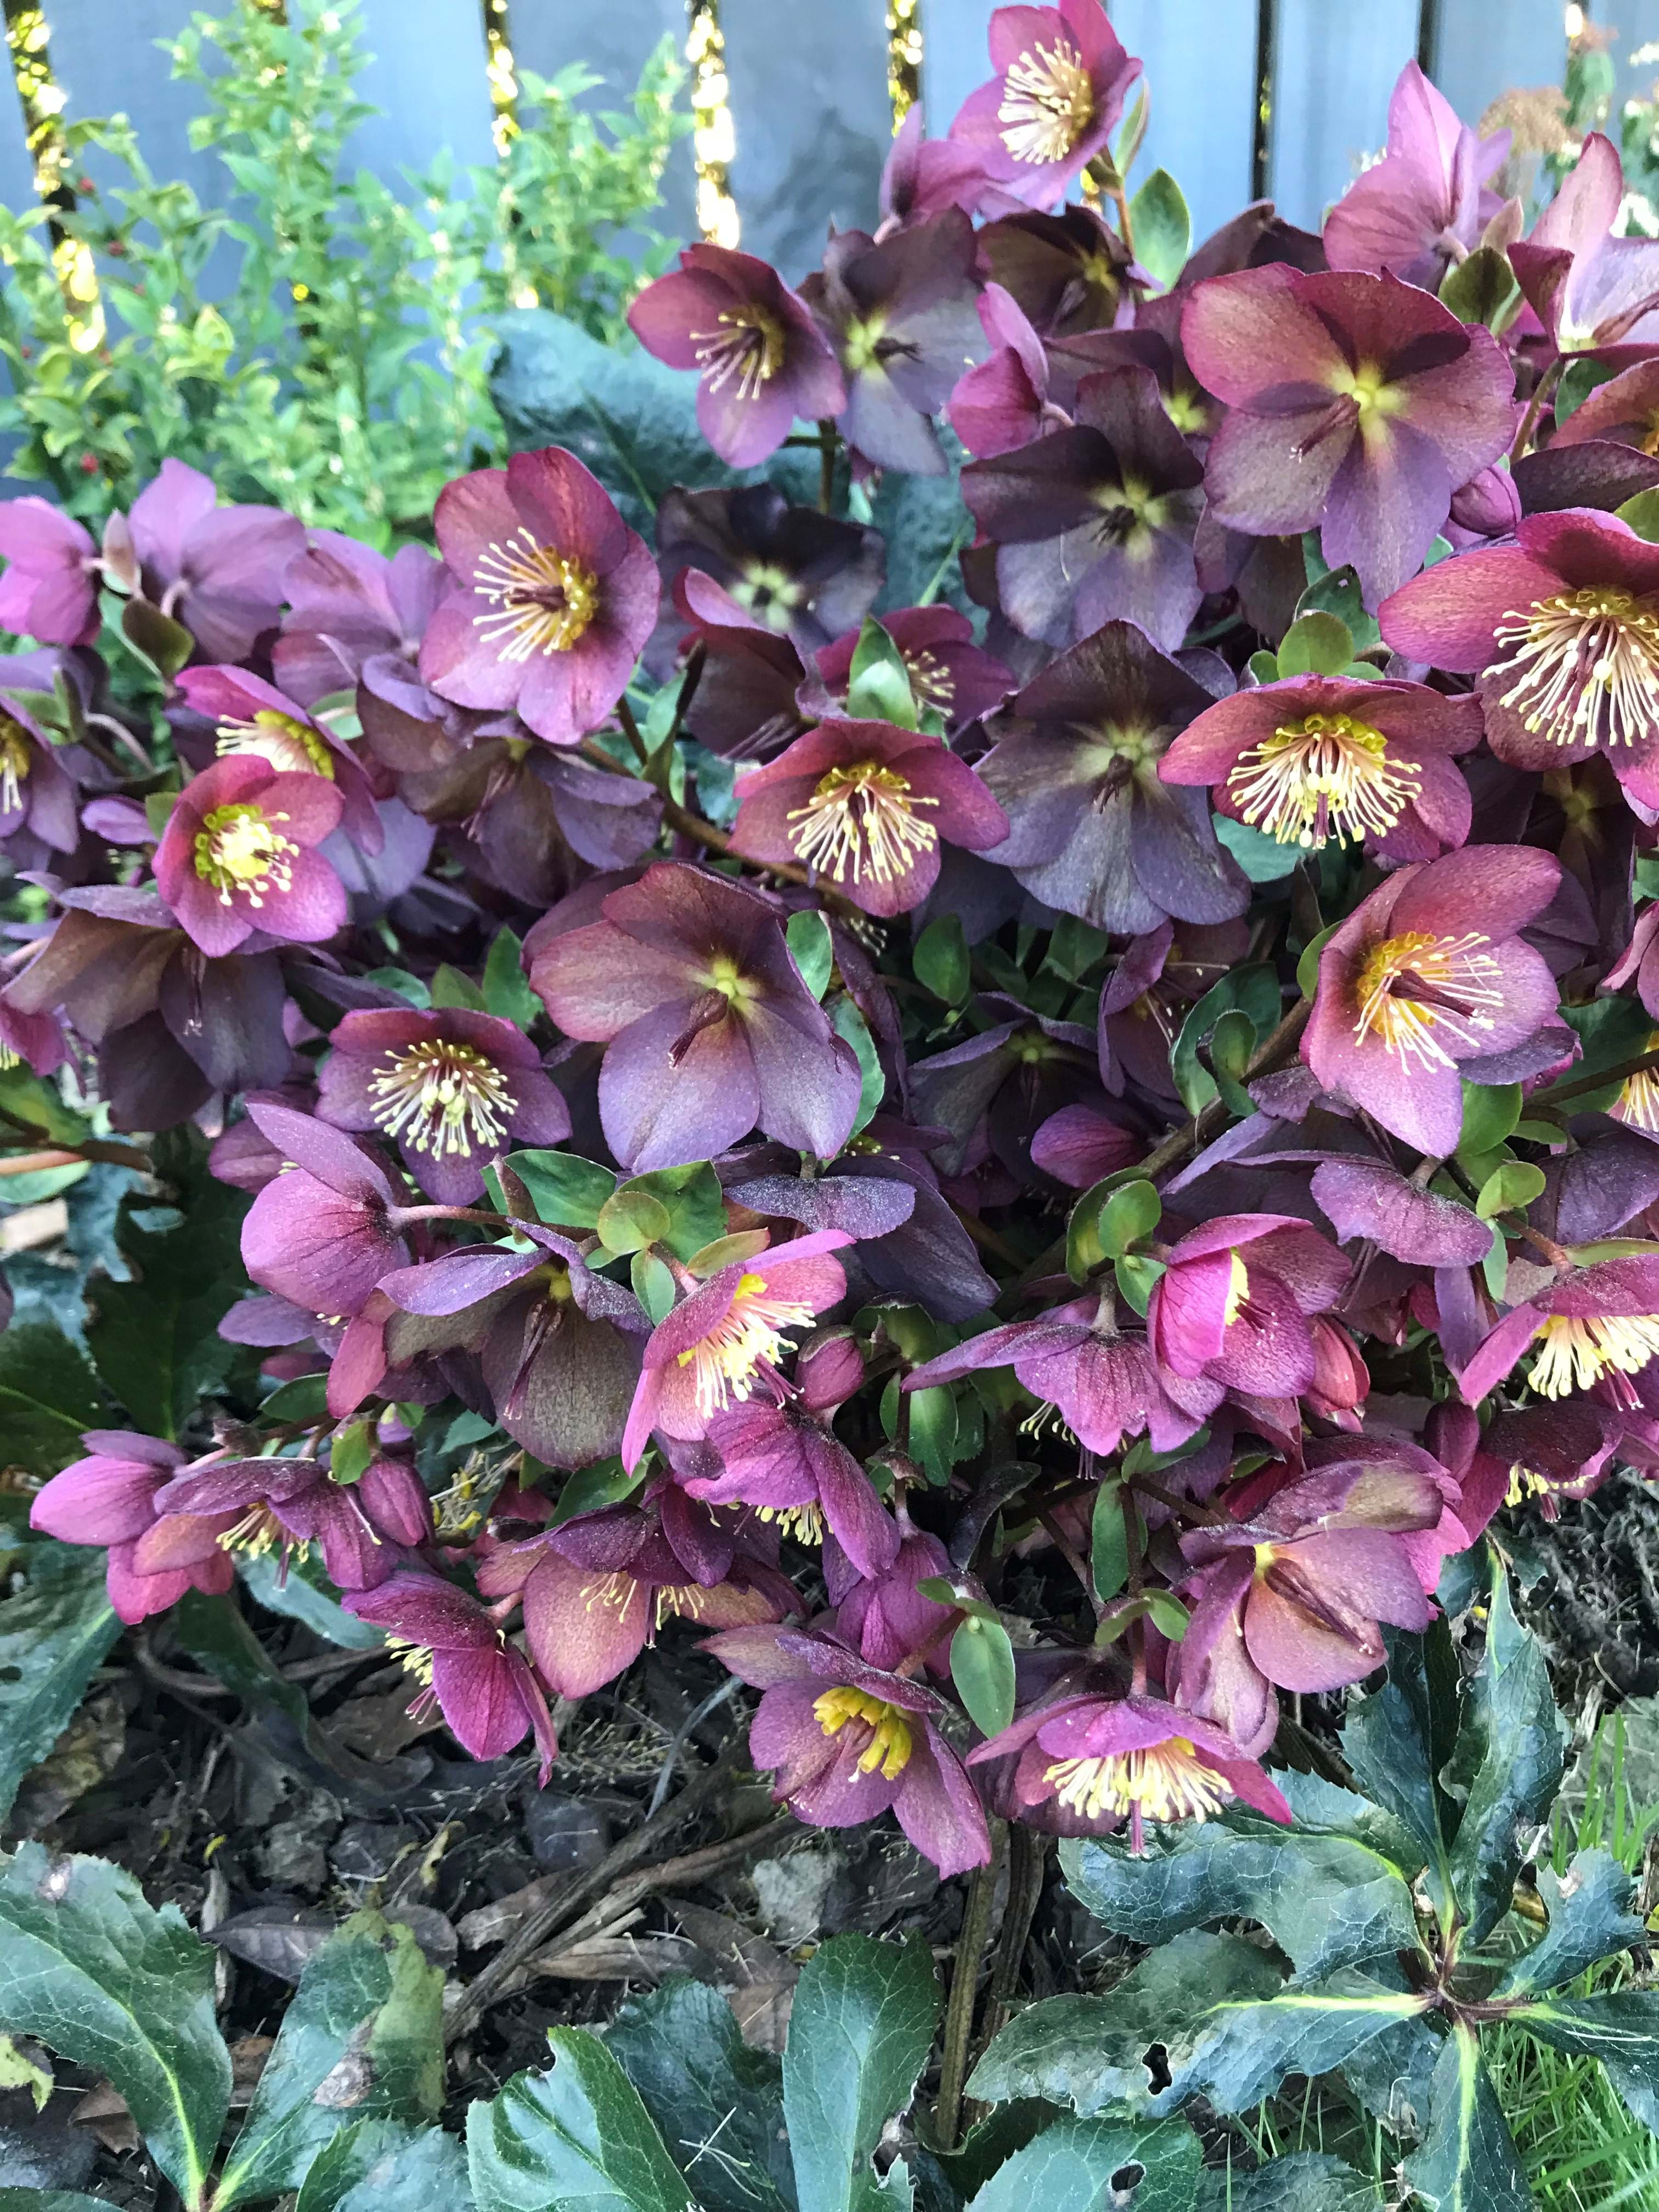 Hellebores or winter roses are a spring star